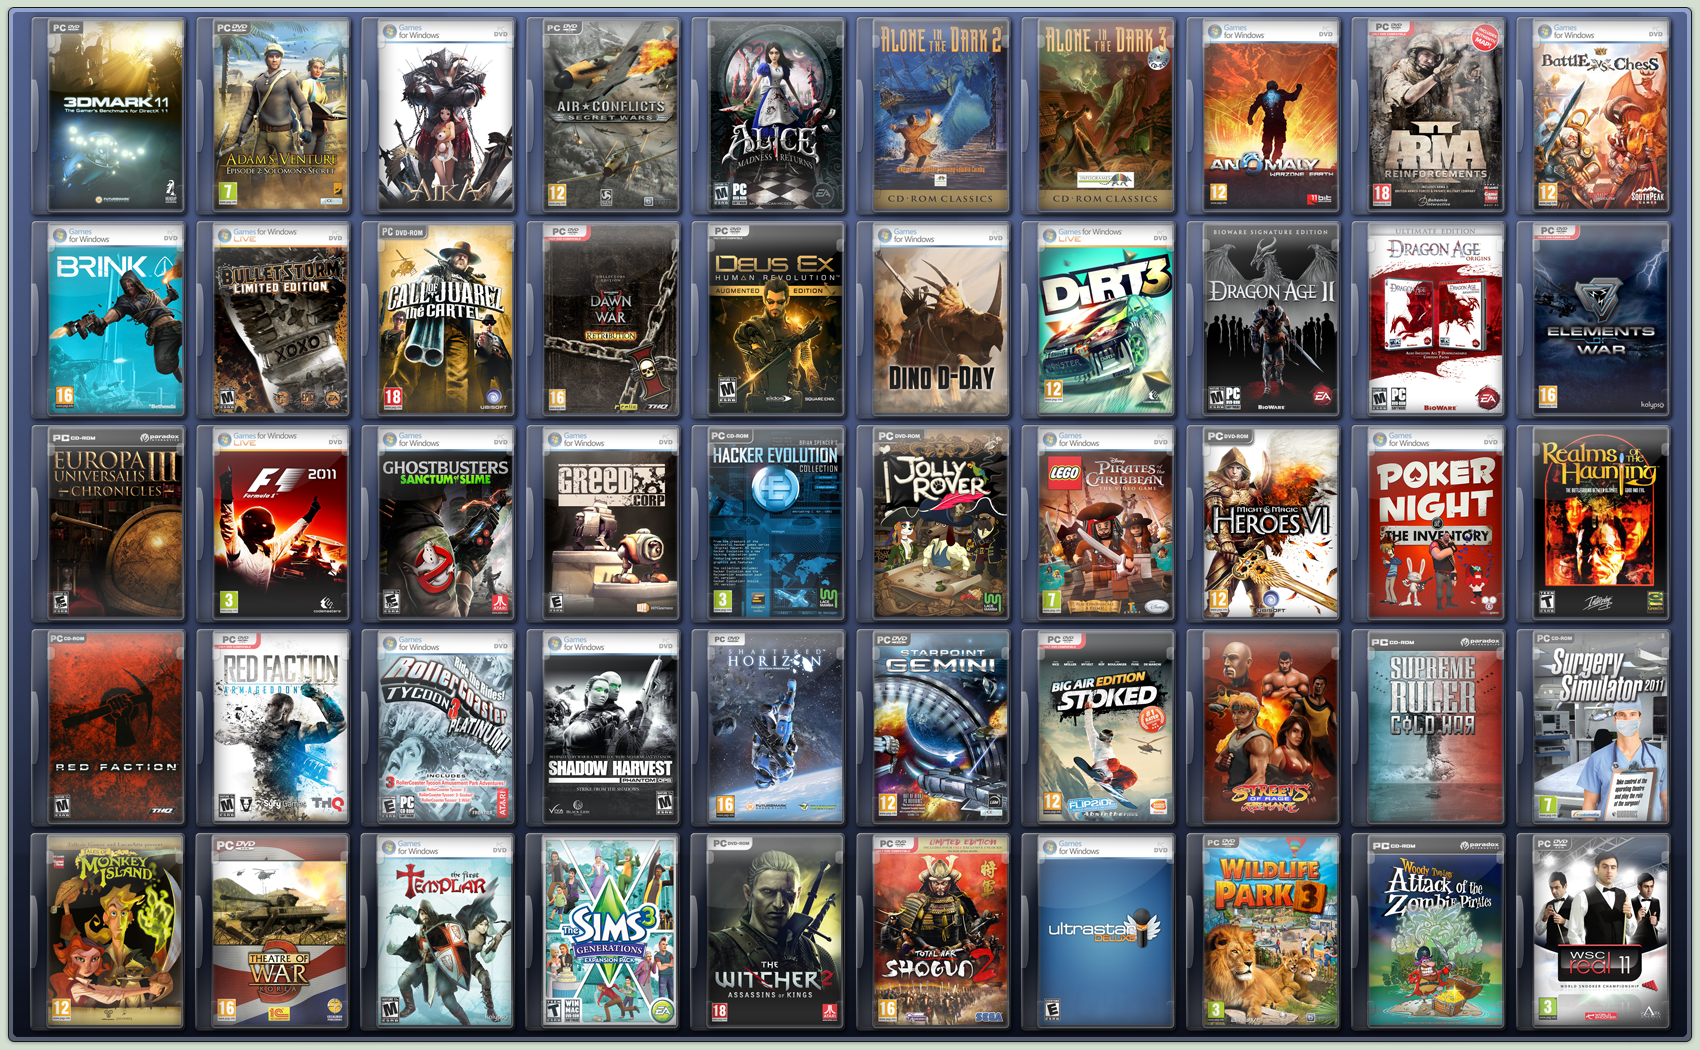 14 Game Icons DeviantART Images - PC Game Icons, PC Game